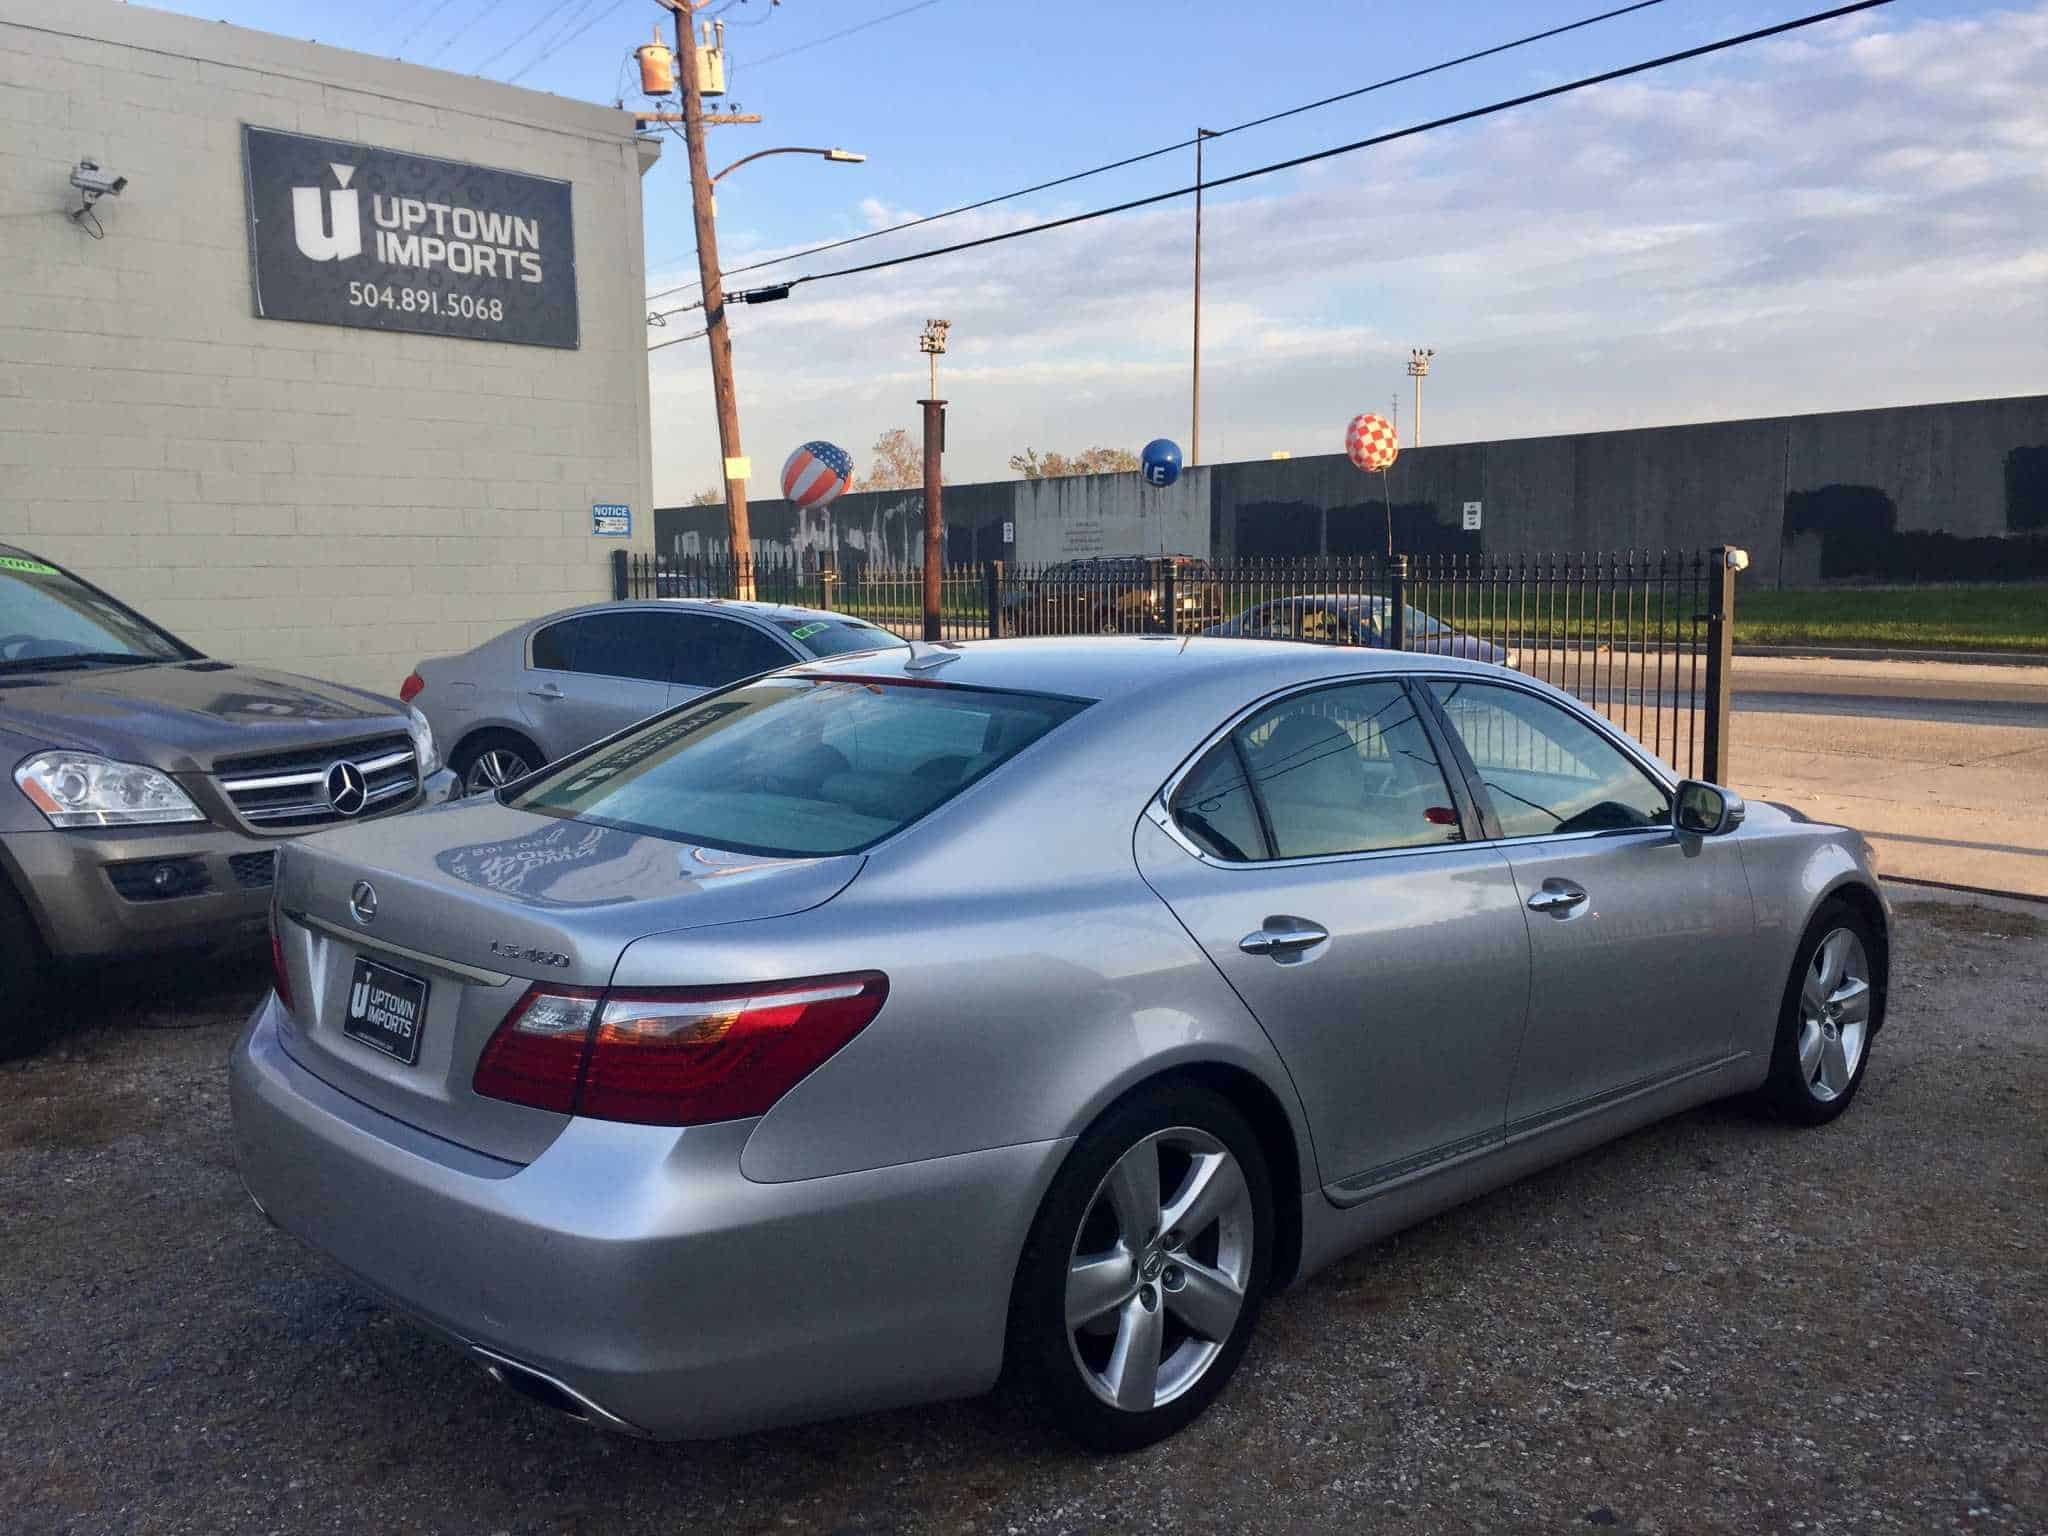 2011 Lexus LS 460 Miles $ Used Cars Pre owned New